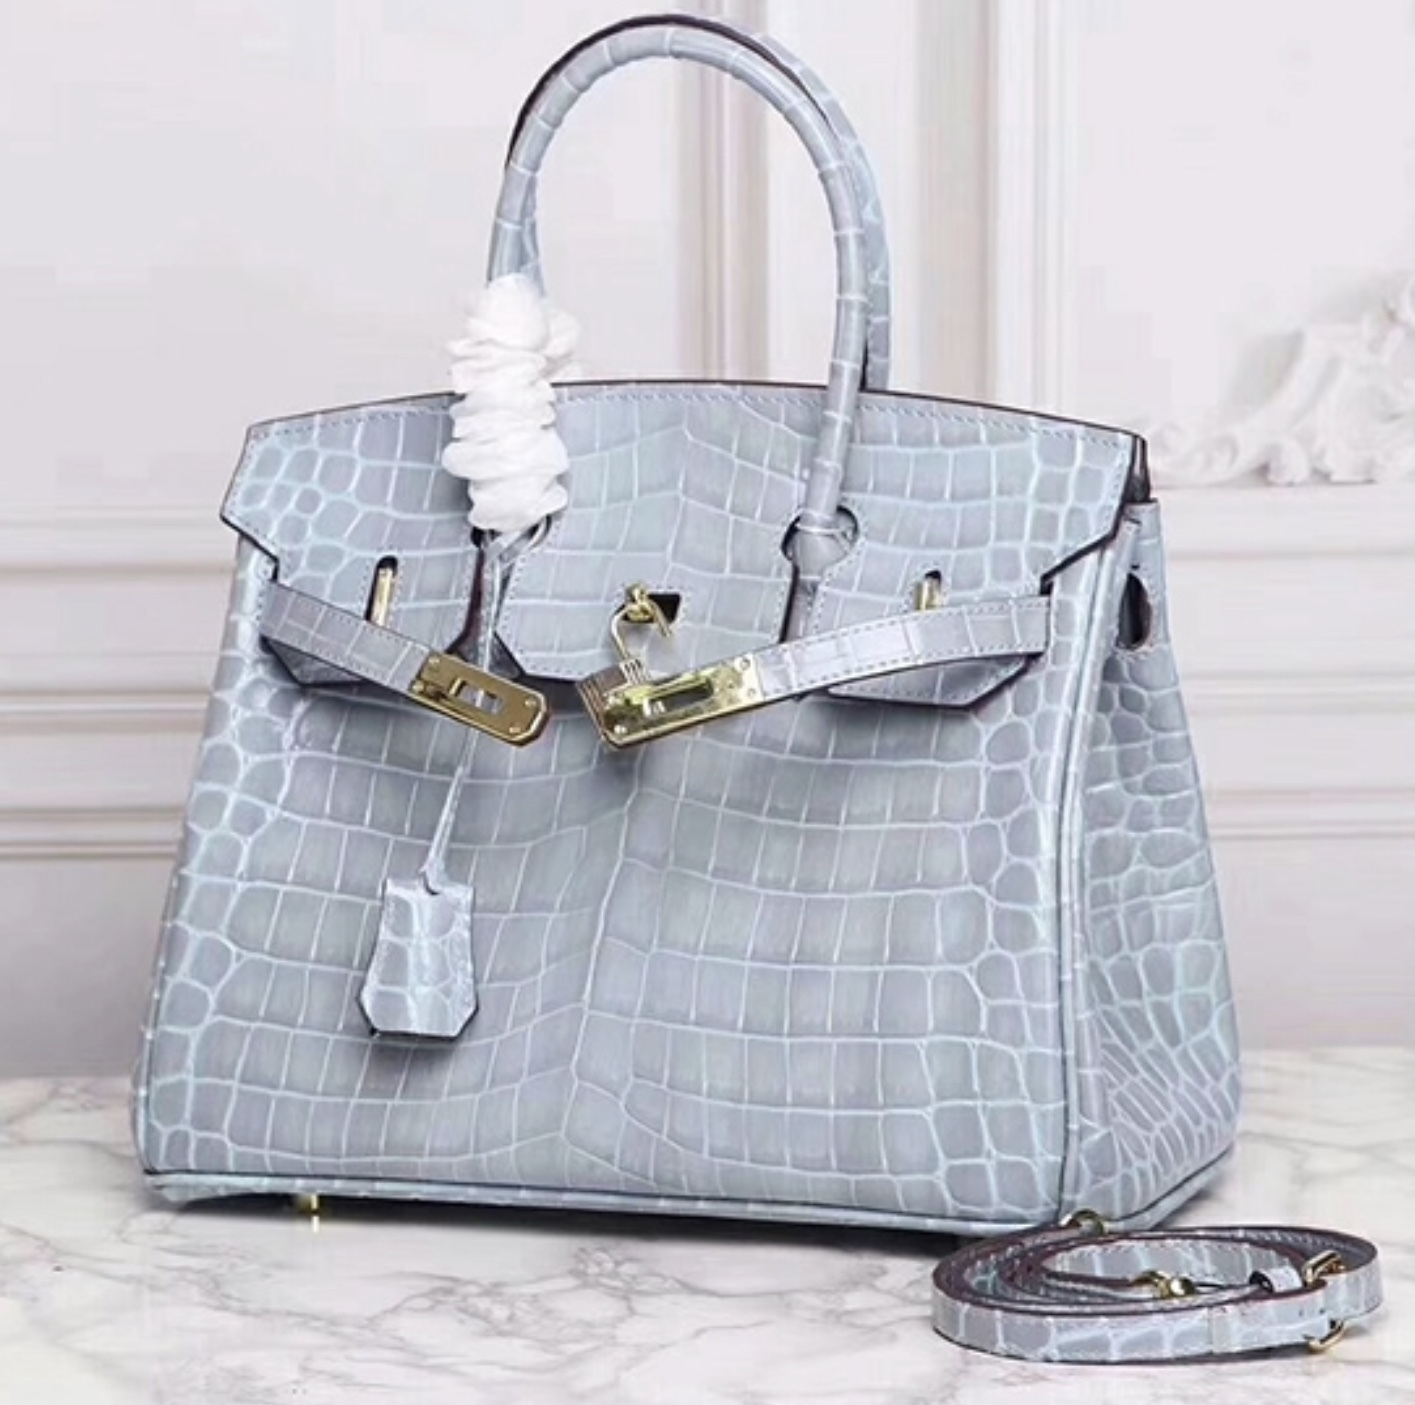 35cm Crocodile Pattern Italian Leather Birkin Style Bag Satchel Handbag 1632L